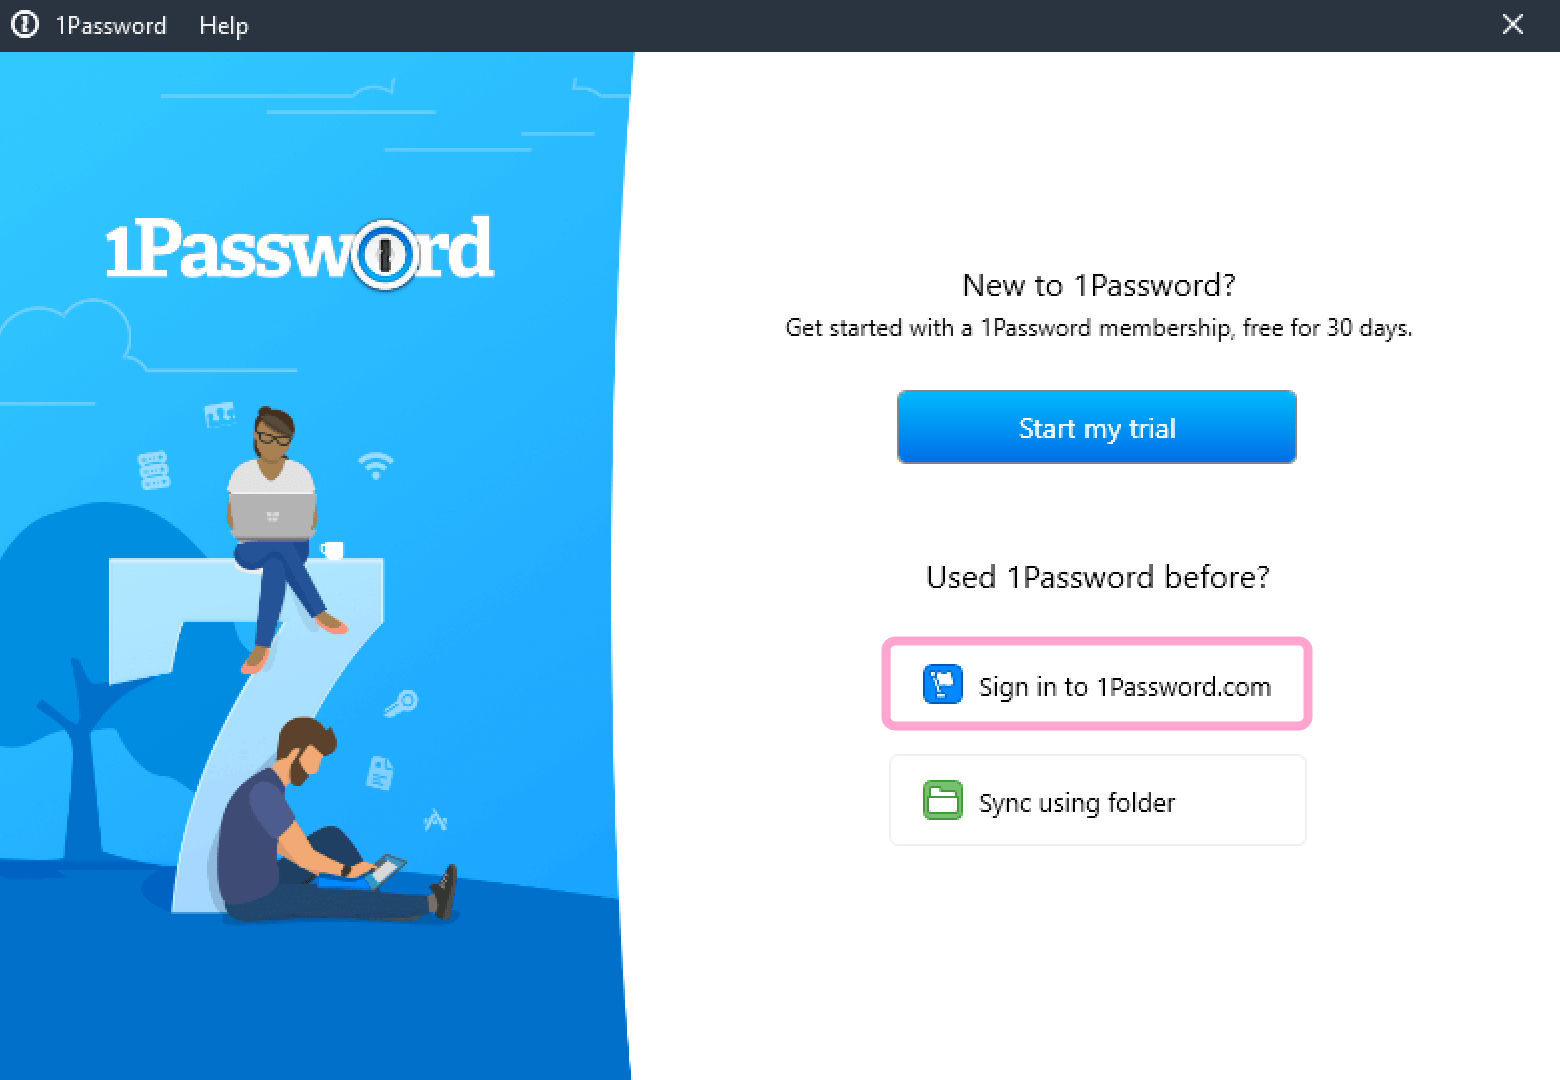 The welcome screen you'll see when you first open 1Password for Windows